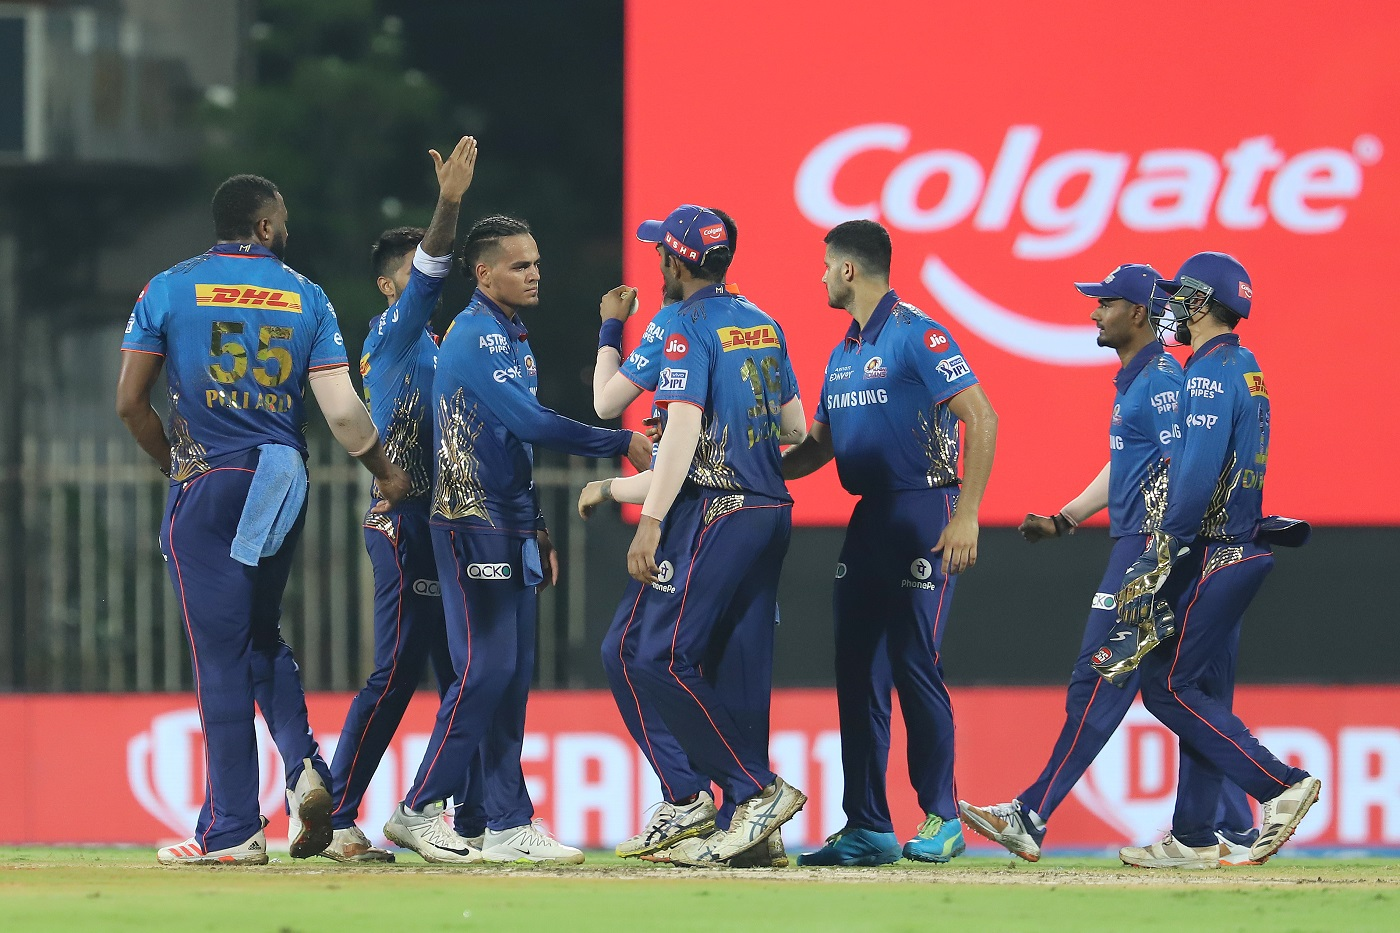 MI are placed 4th on IPL 2021 points table | BCCI-IPL